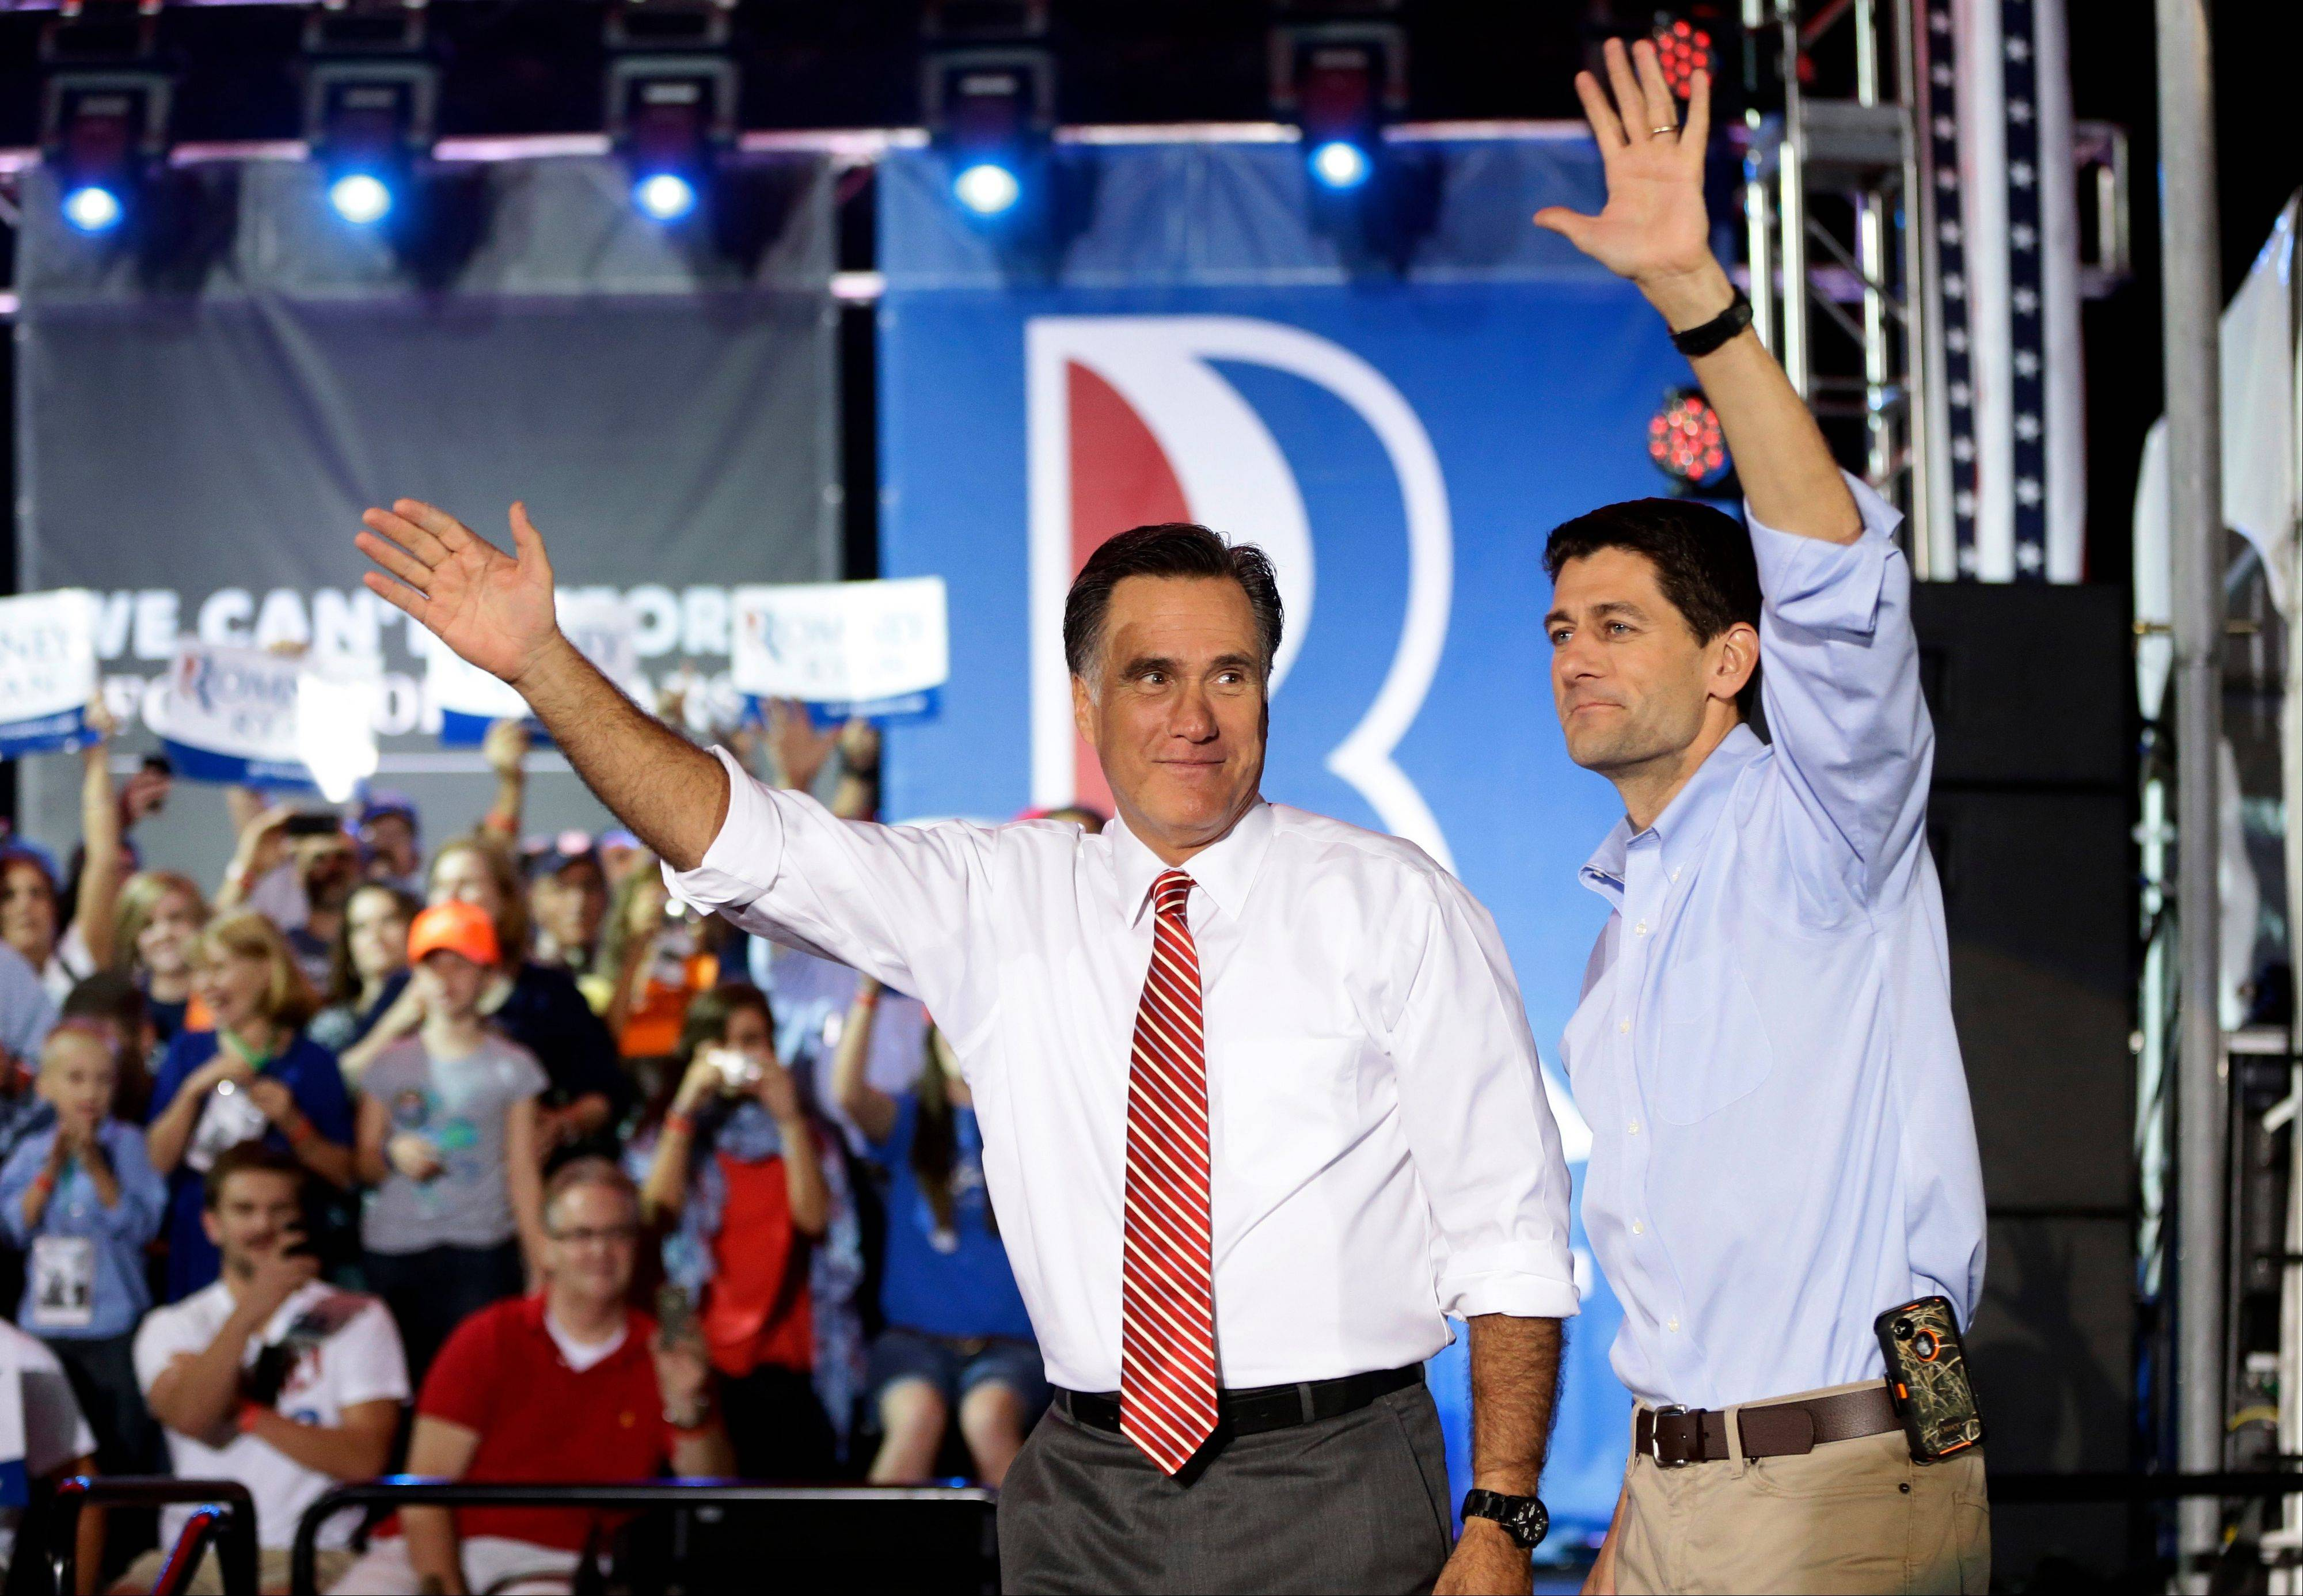 I was 'completely wrong,' Romney says about 47% remark